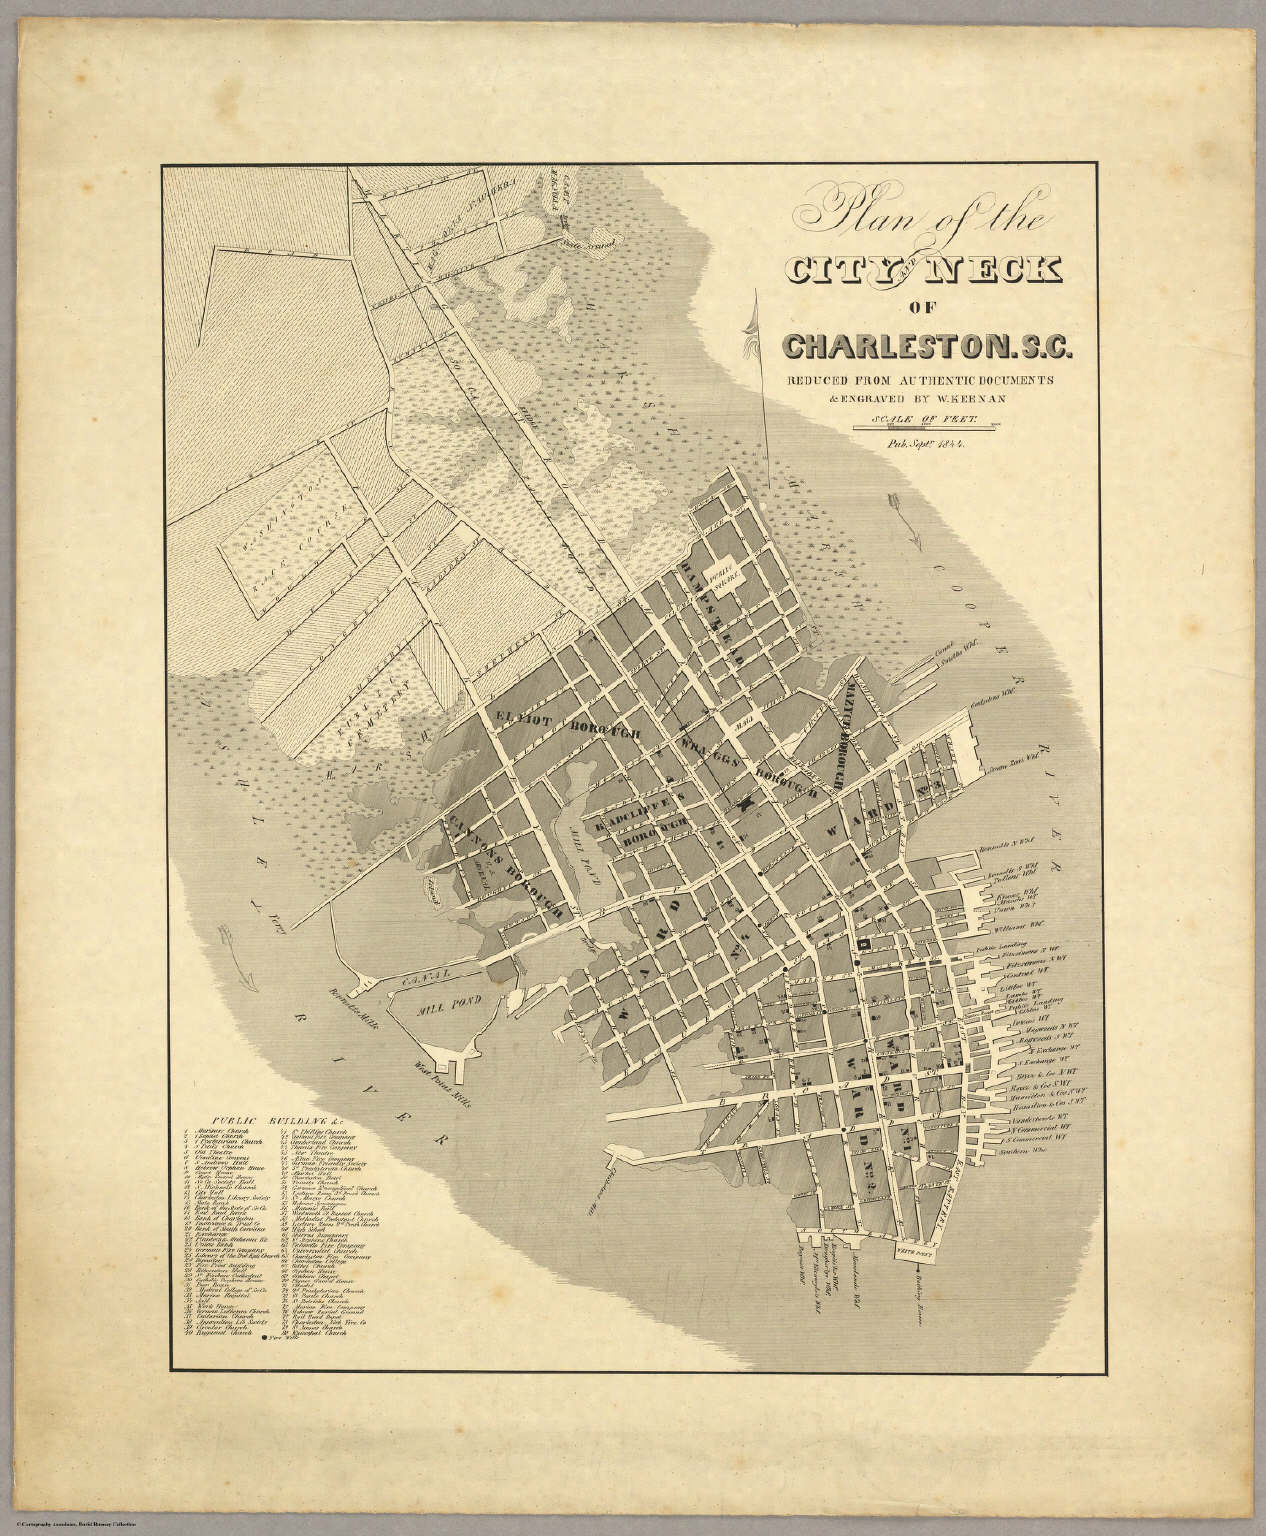 Charleston, S.C. - David Rumsey Historical Map Collection on